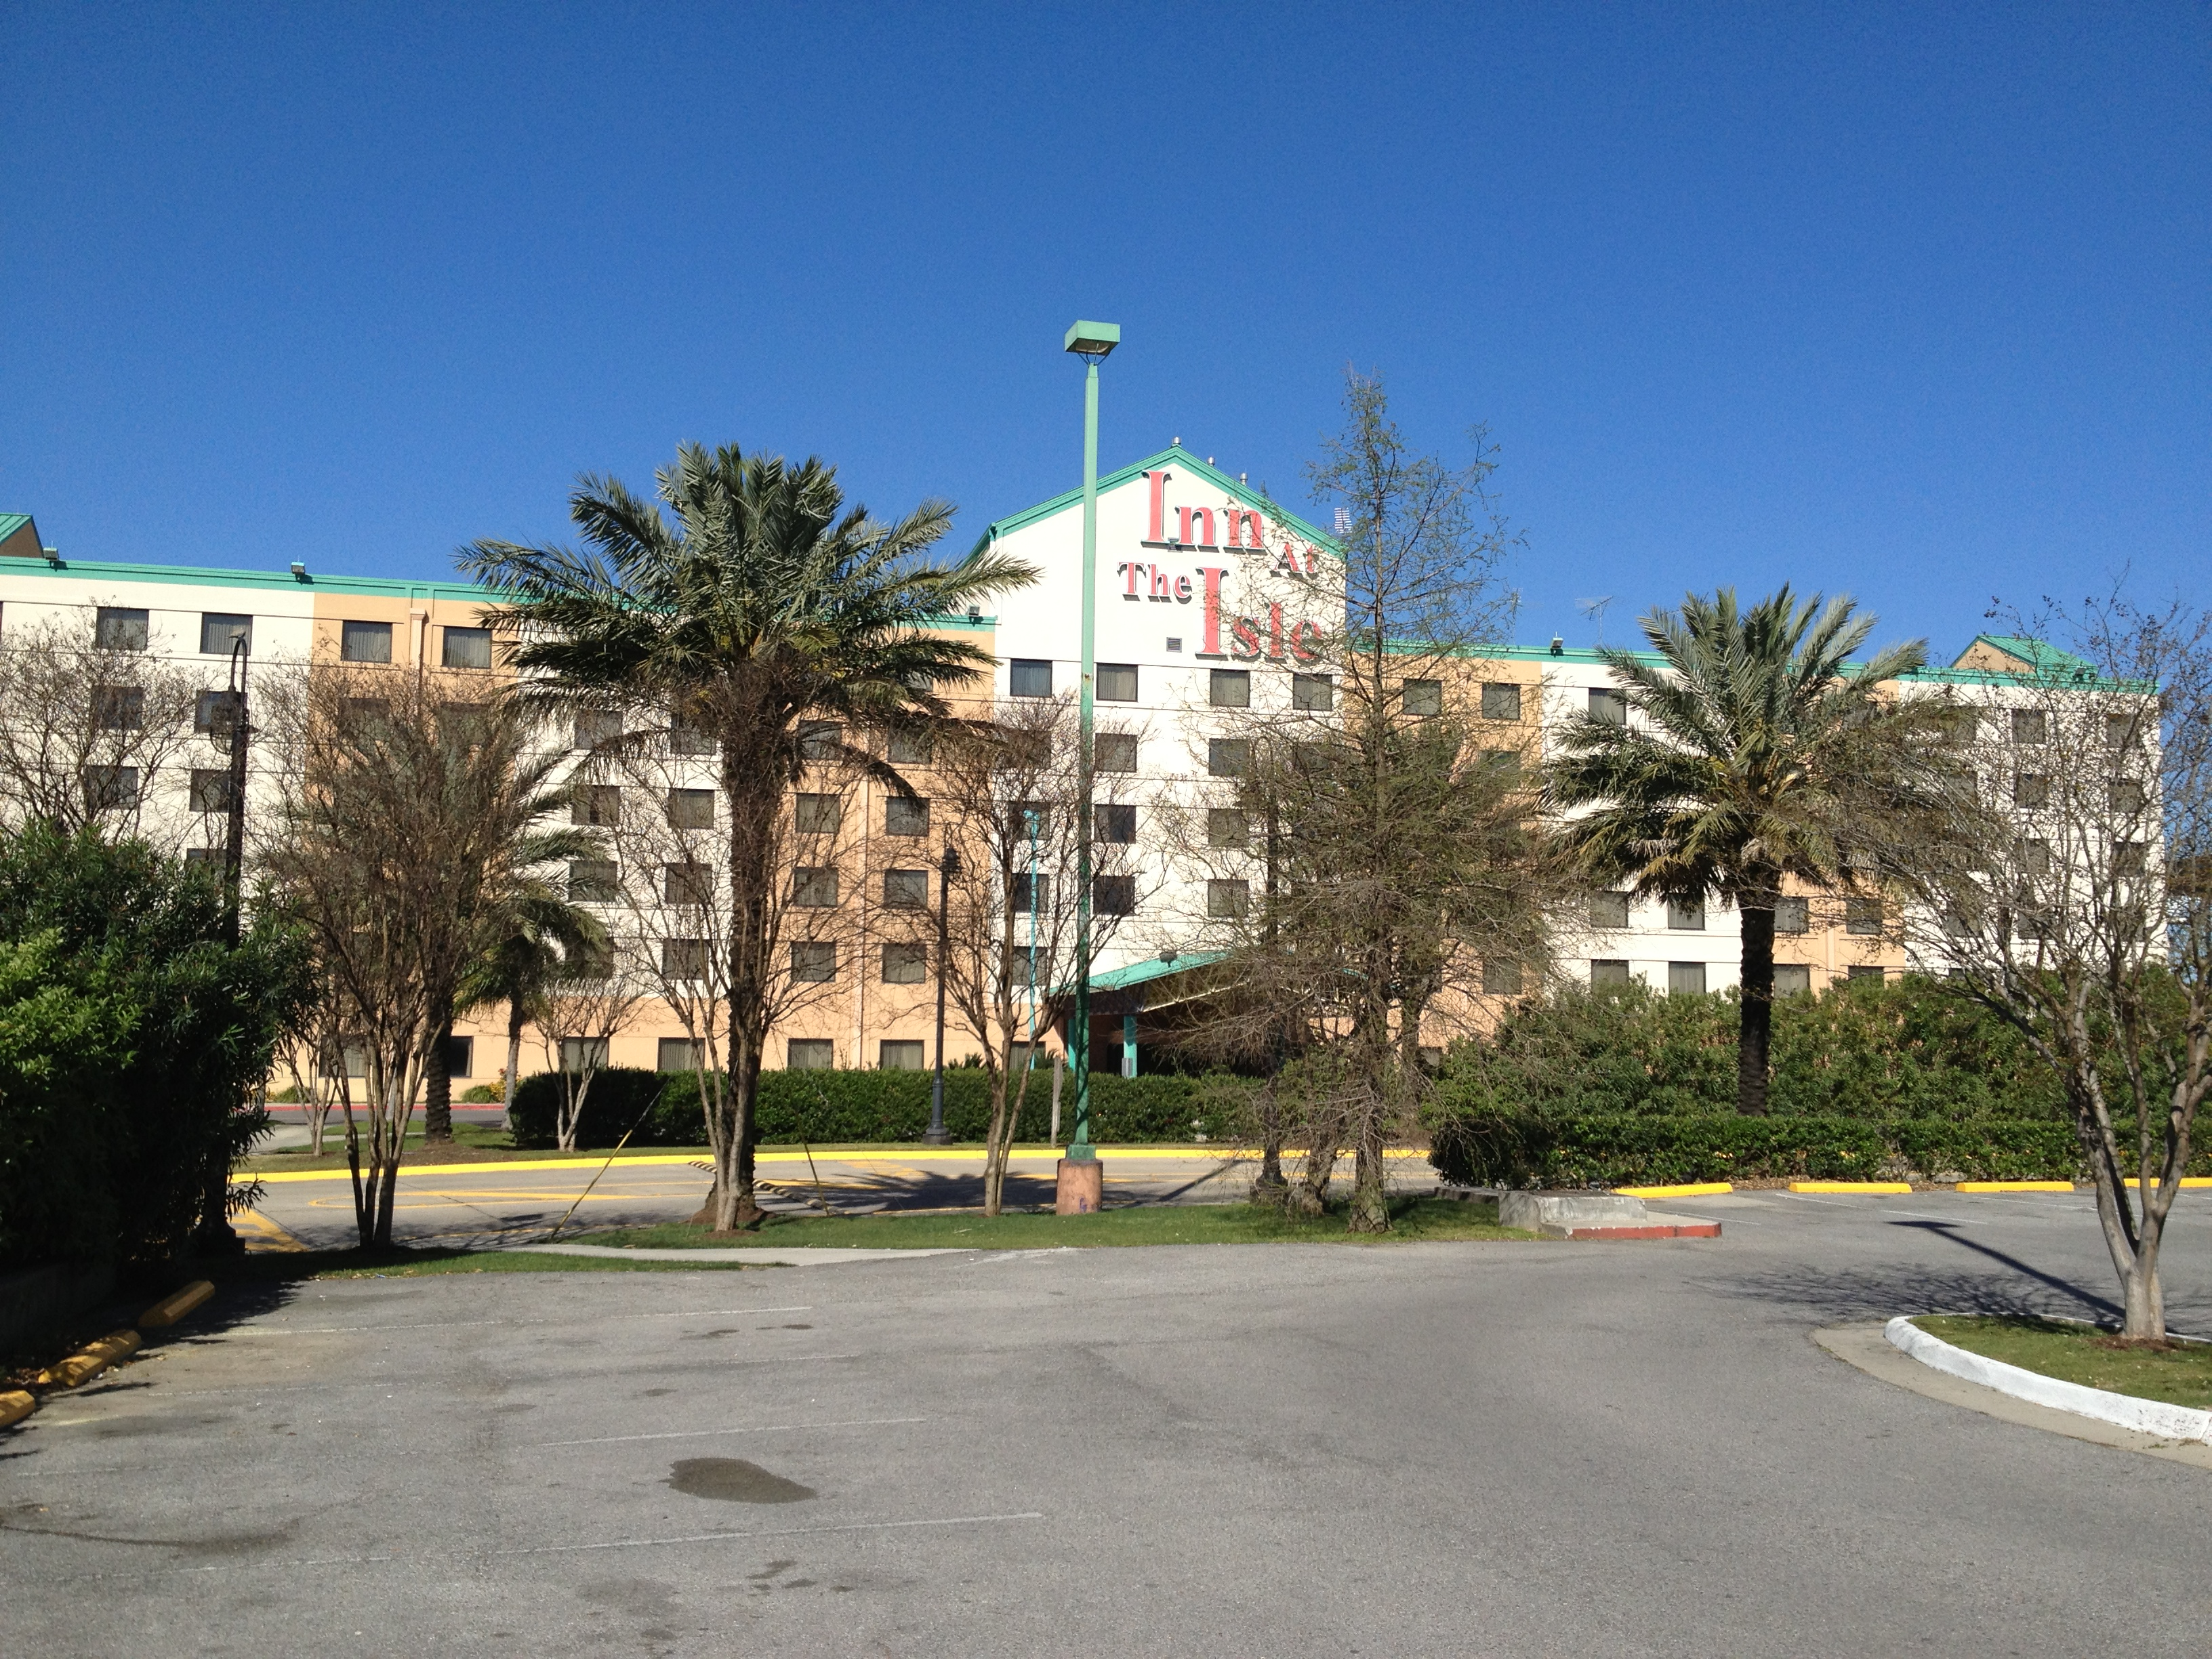 The isle casino biloxi 14